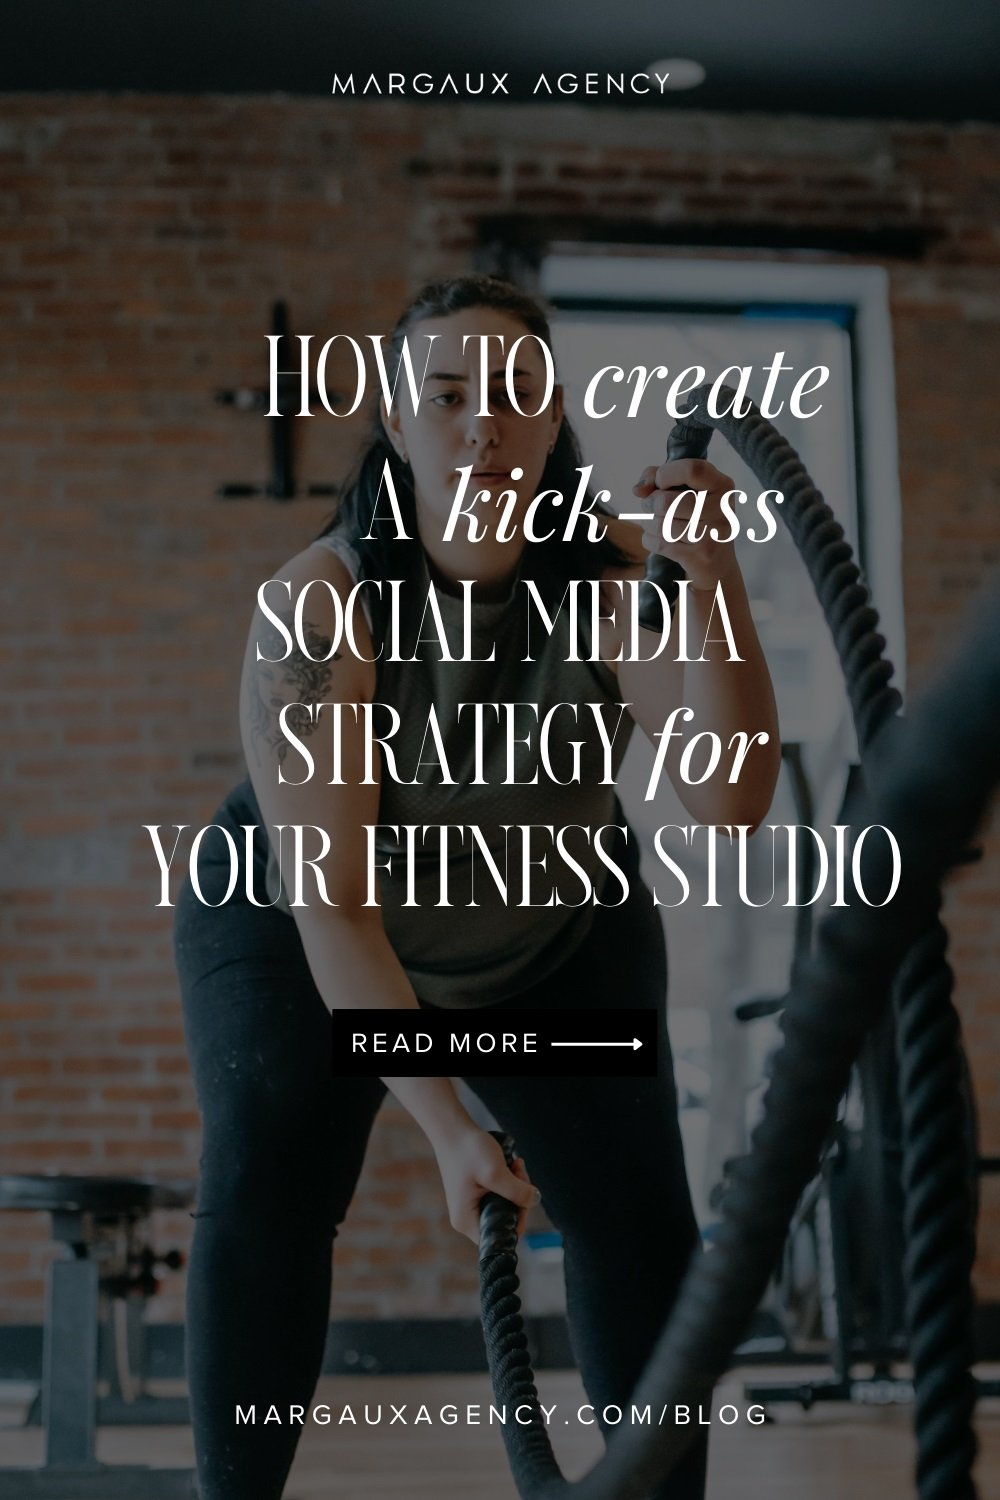 Fitness Social Media Marketing: How to Create a Kickass Strategy for Your Fitness Studio